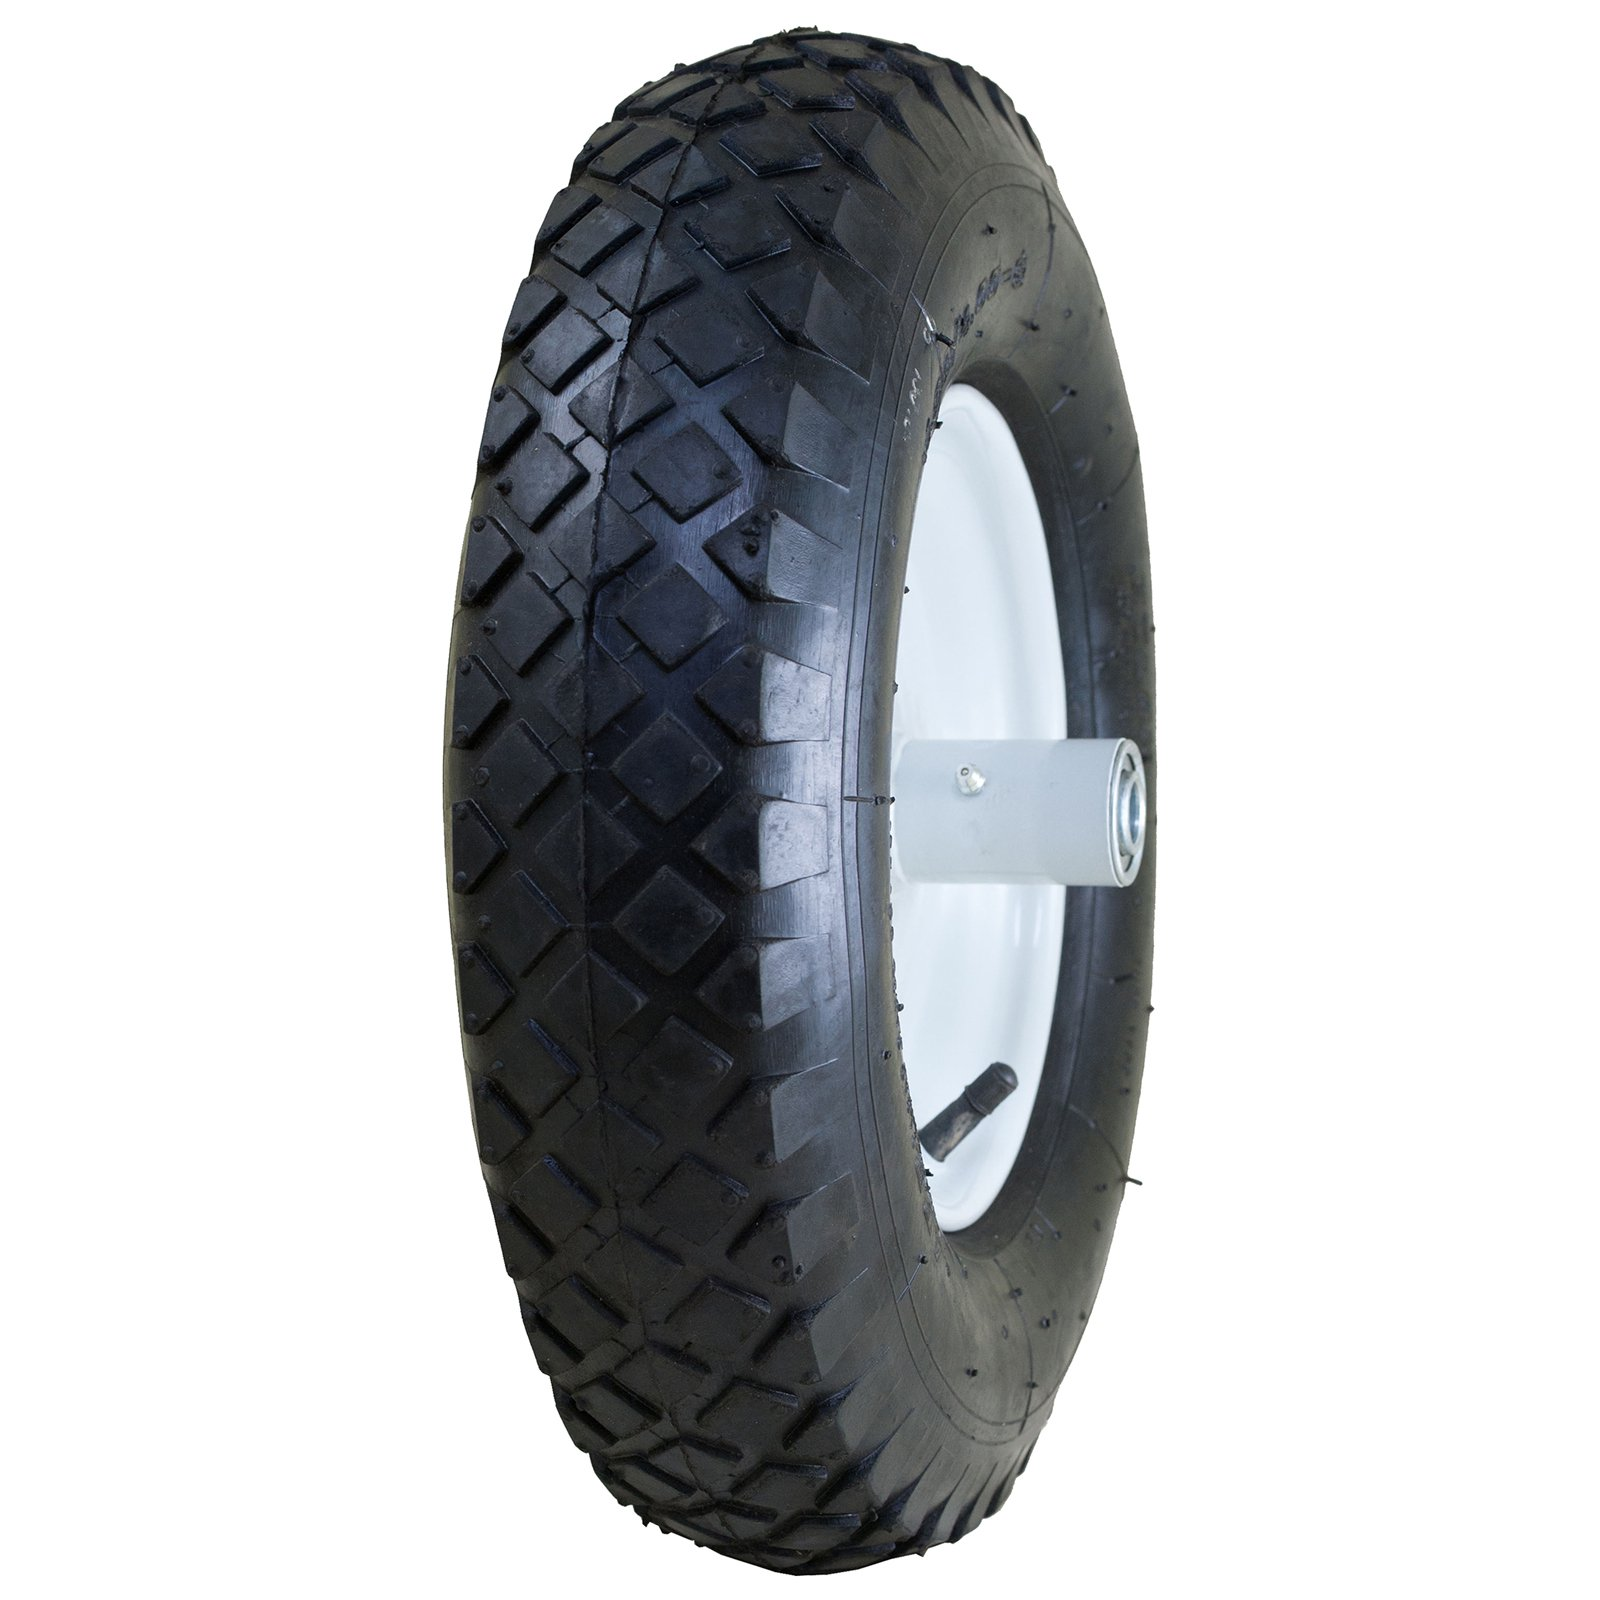 "Marathon Industries 20047 4.80/4.00-8"" Pneumatic Knobby Tread Wheelbarrow Tire"